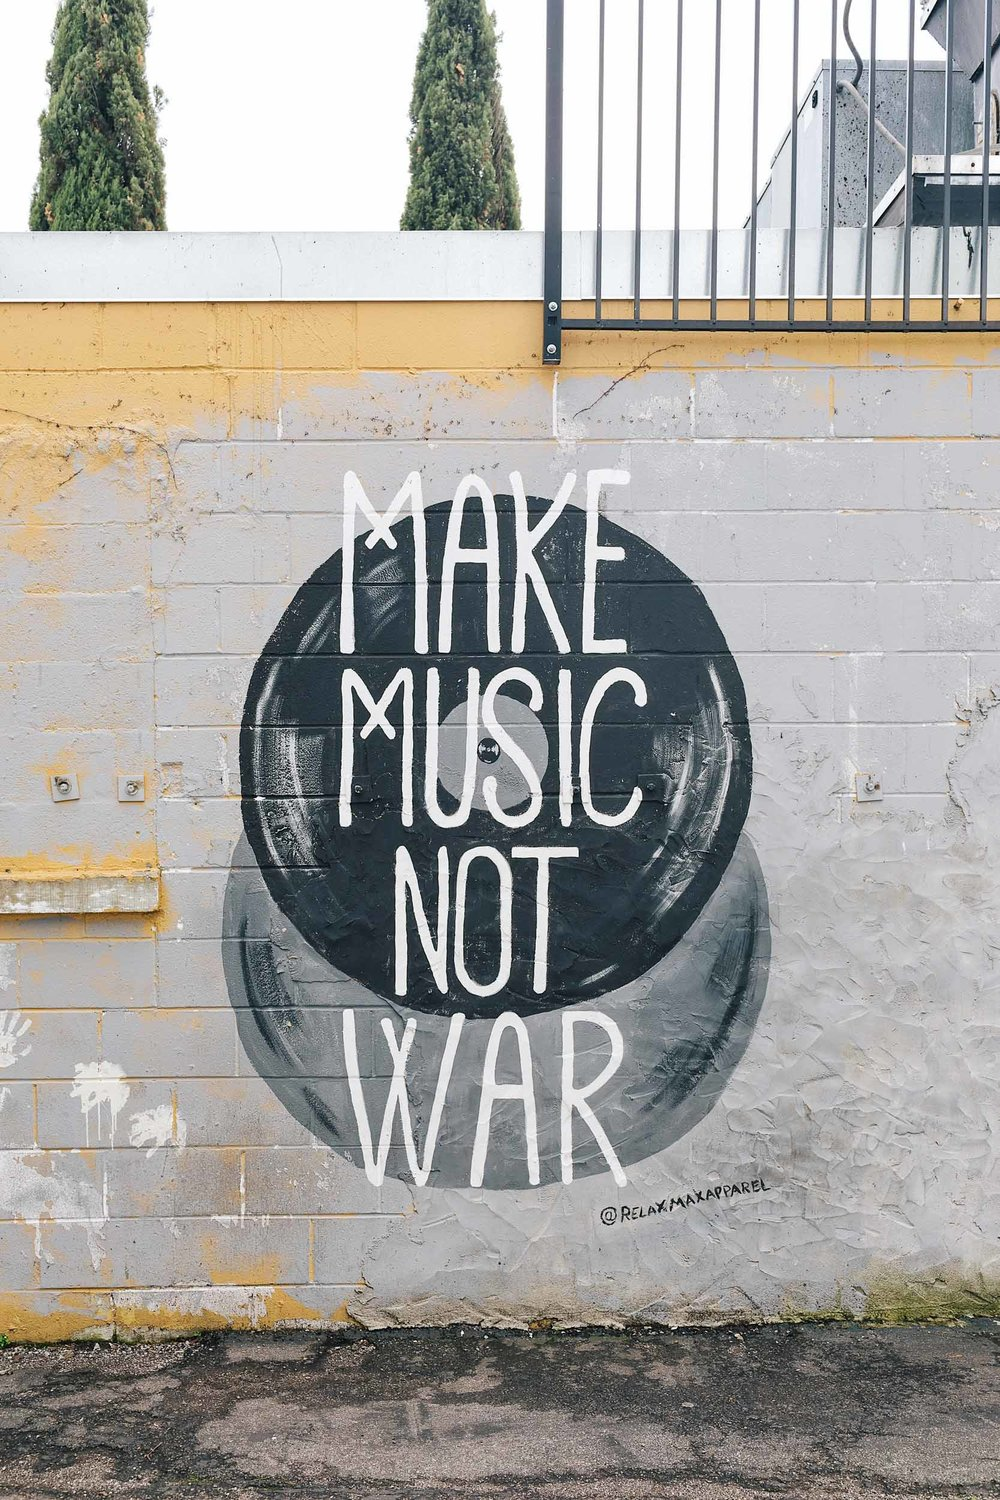 MAKE MUSIC NOT WAR mural in Nashville, Tennessee